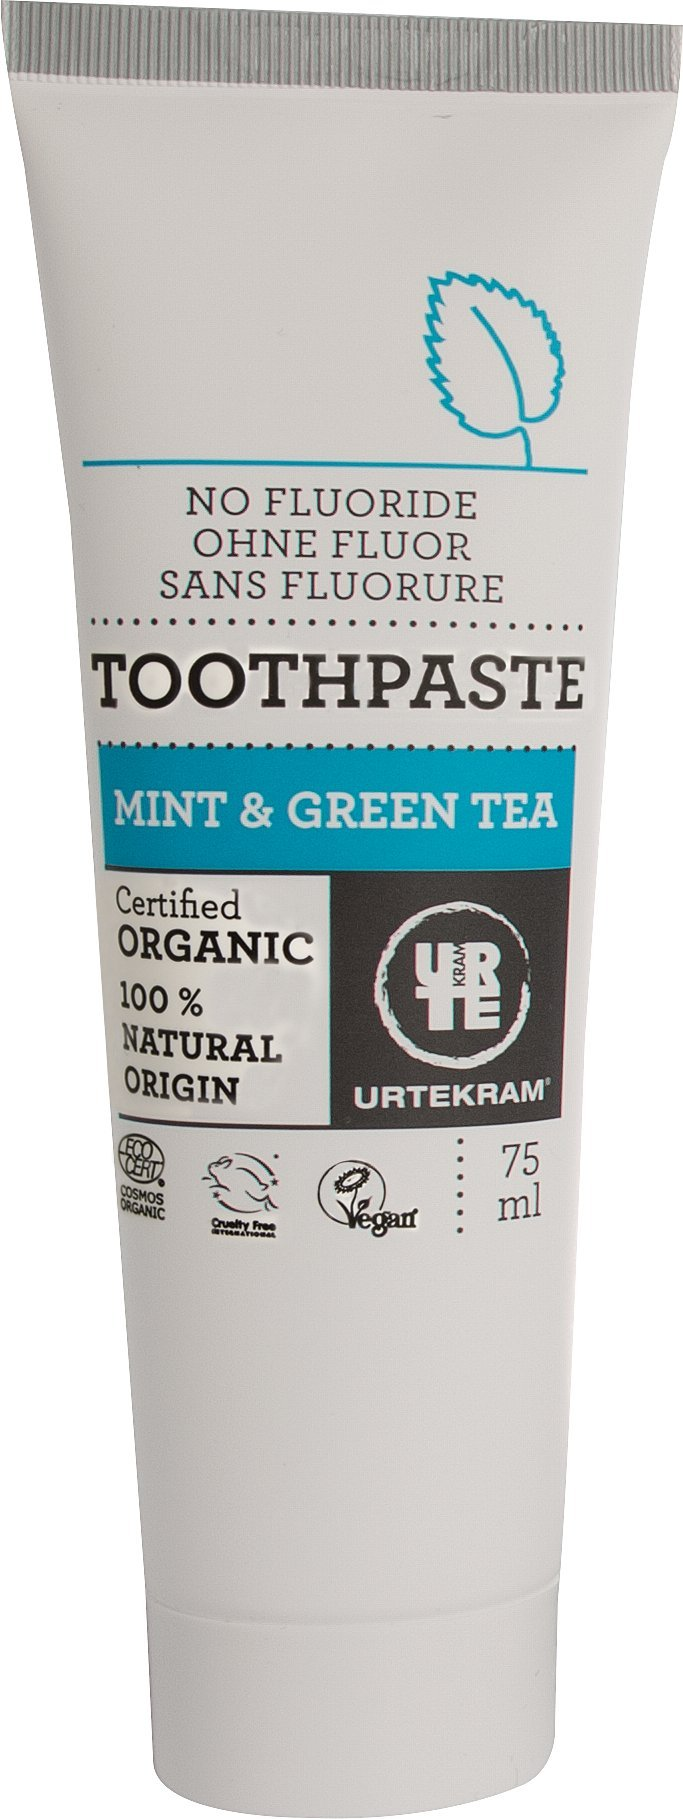 Urtekram Mint and Green Tea Toothpaste Organic, Without Fluoride, 75 Millilitre